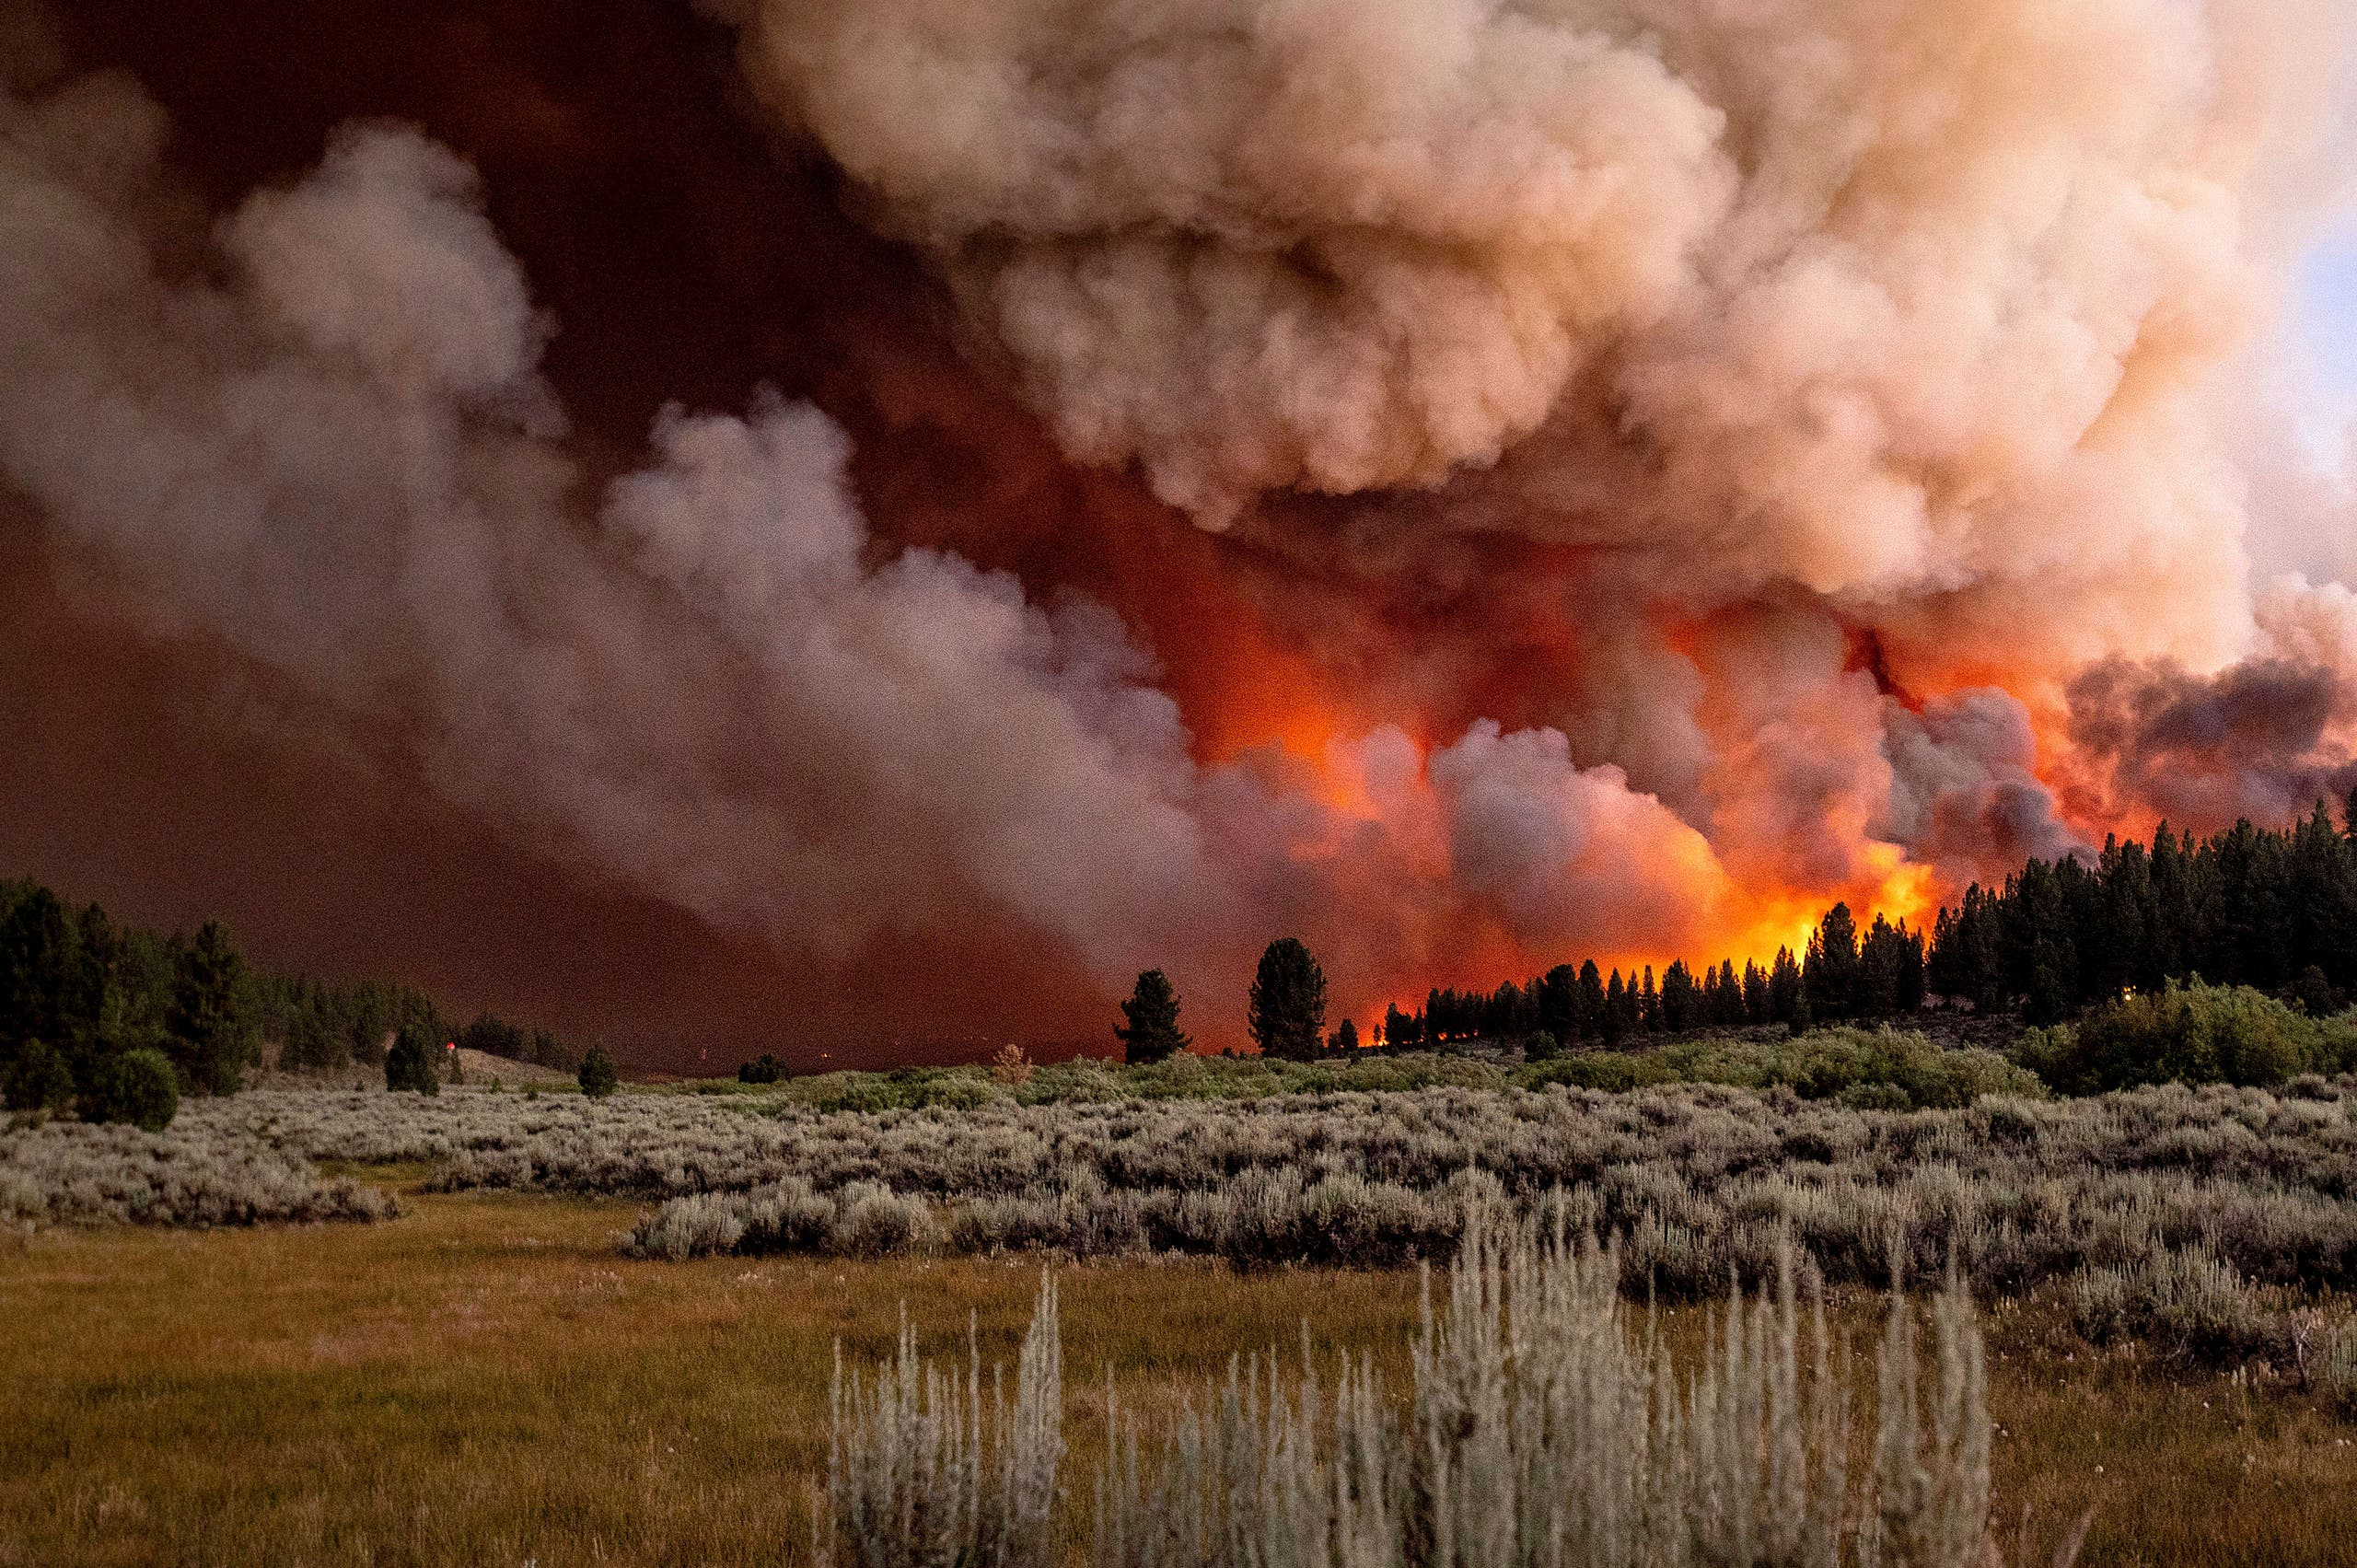 Plumes of smoke and fire rise above Frenchman Lake as the Sugar Fire, part of the Beckwourth Complex Fire, burns in Plumas National Forest, California, on Thursday, July 8, 2021. (AP)